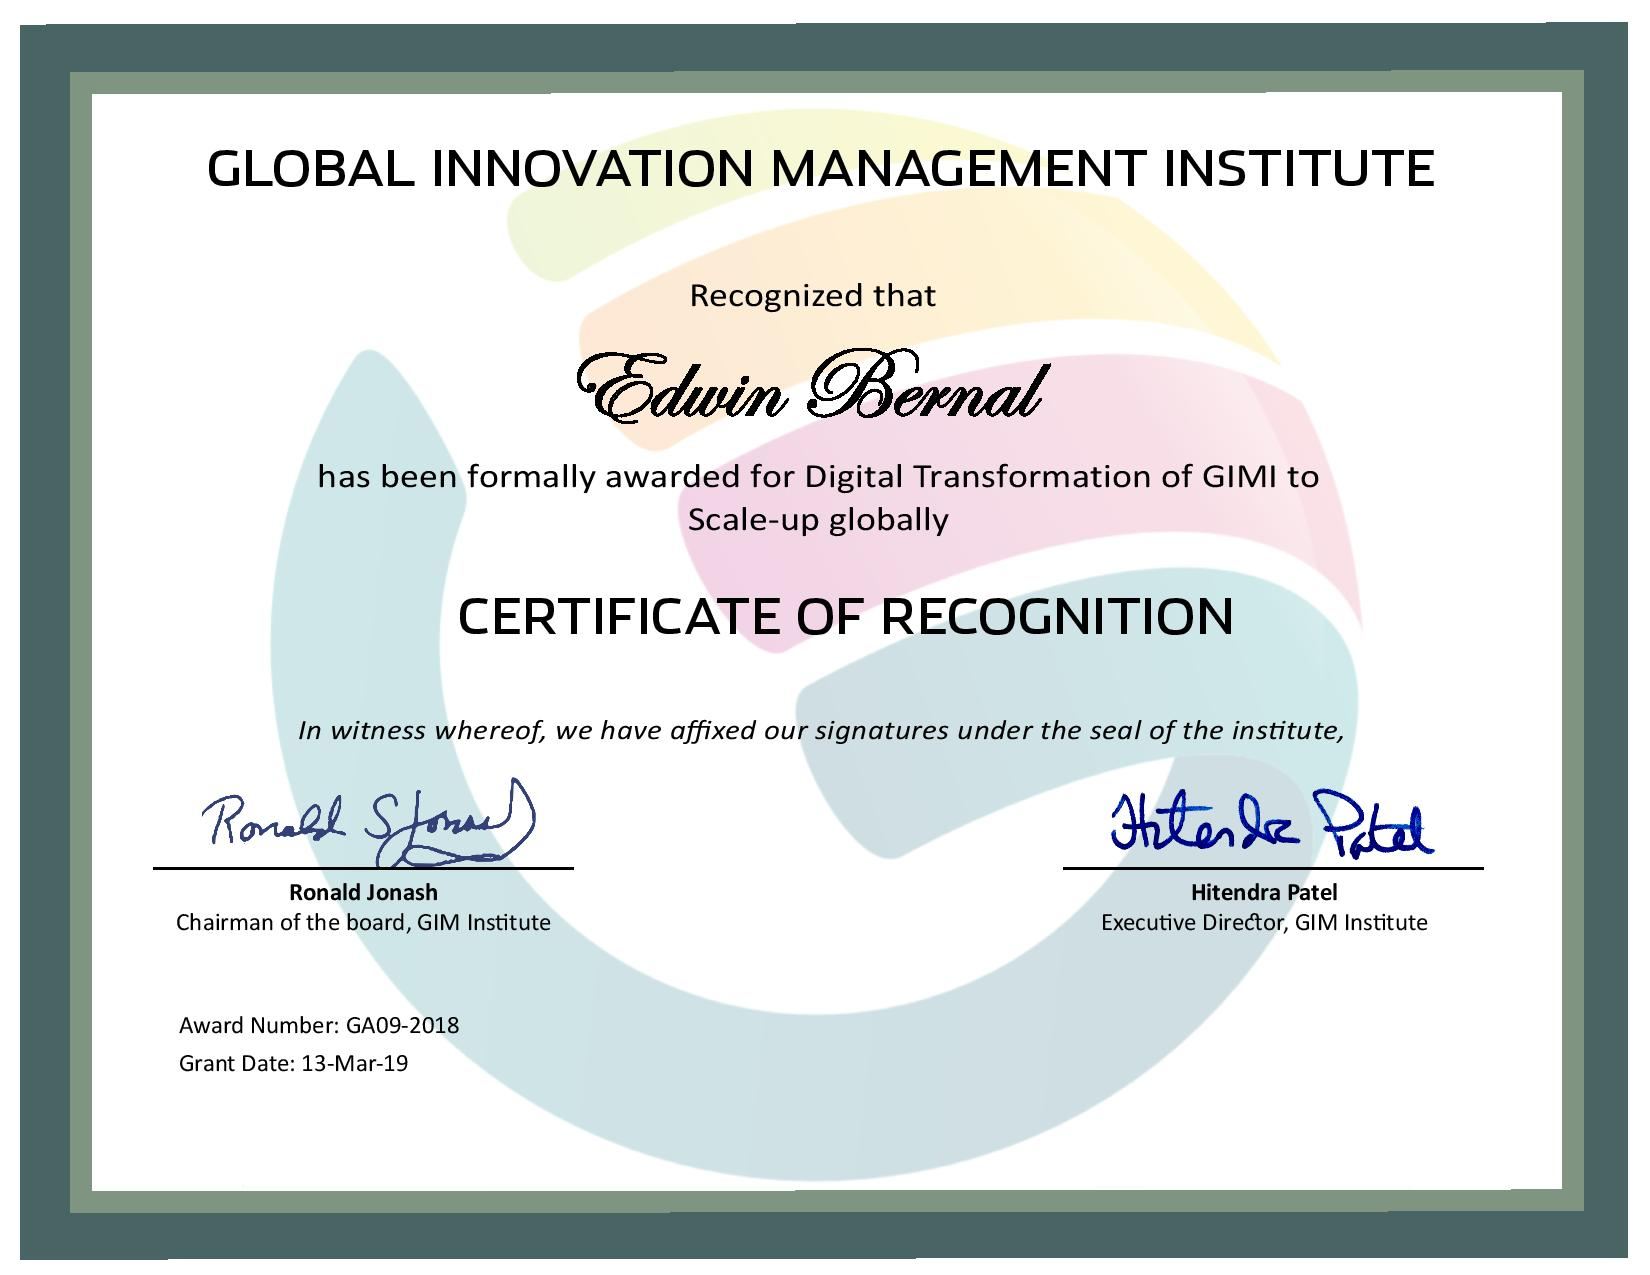 for Digital Transformation of GIMI to Scale-up globally